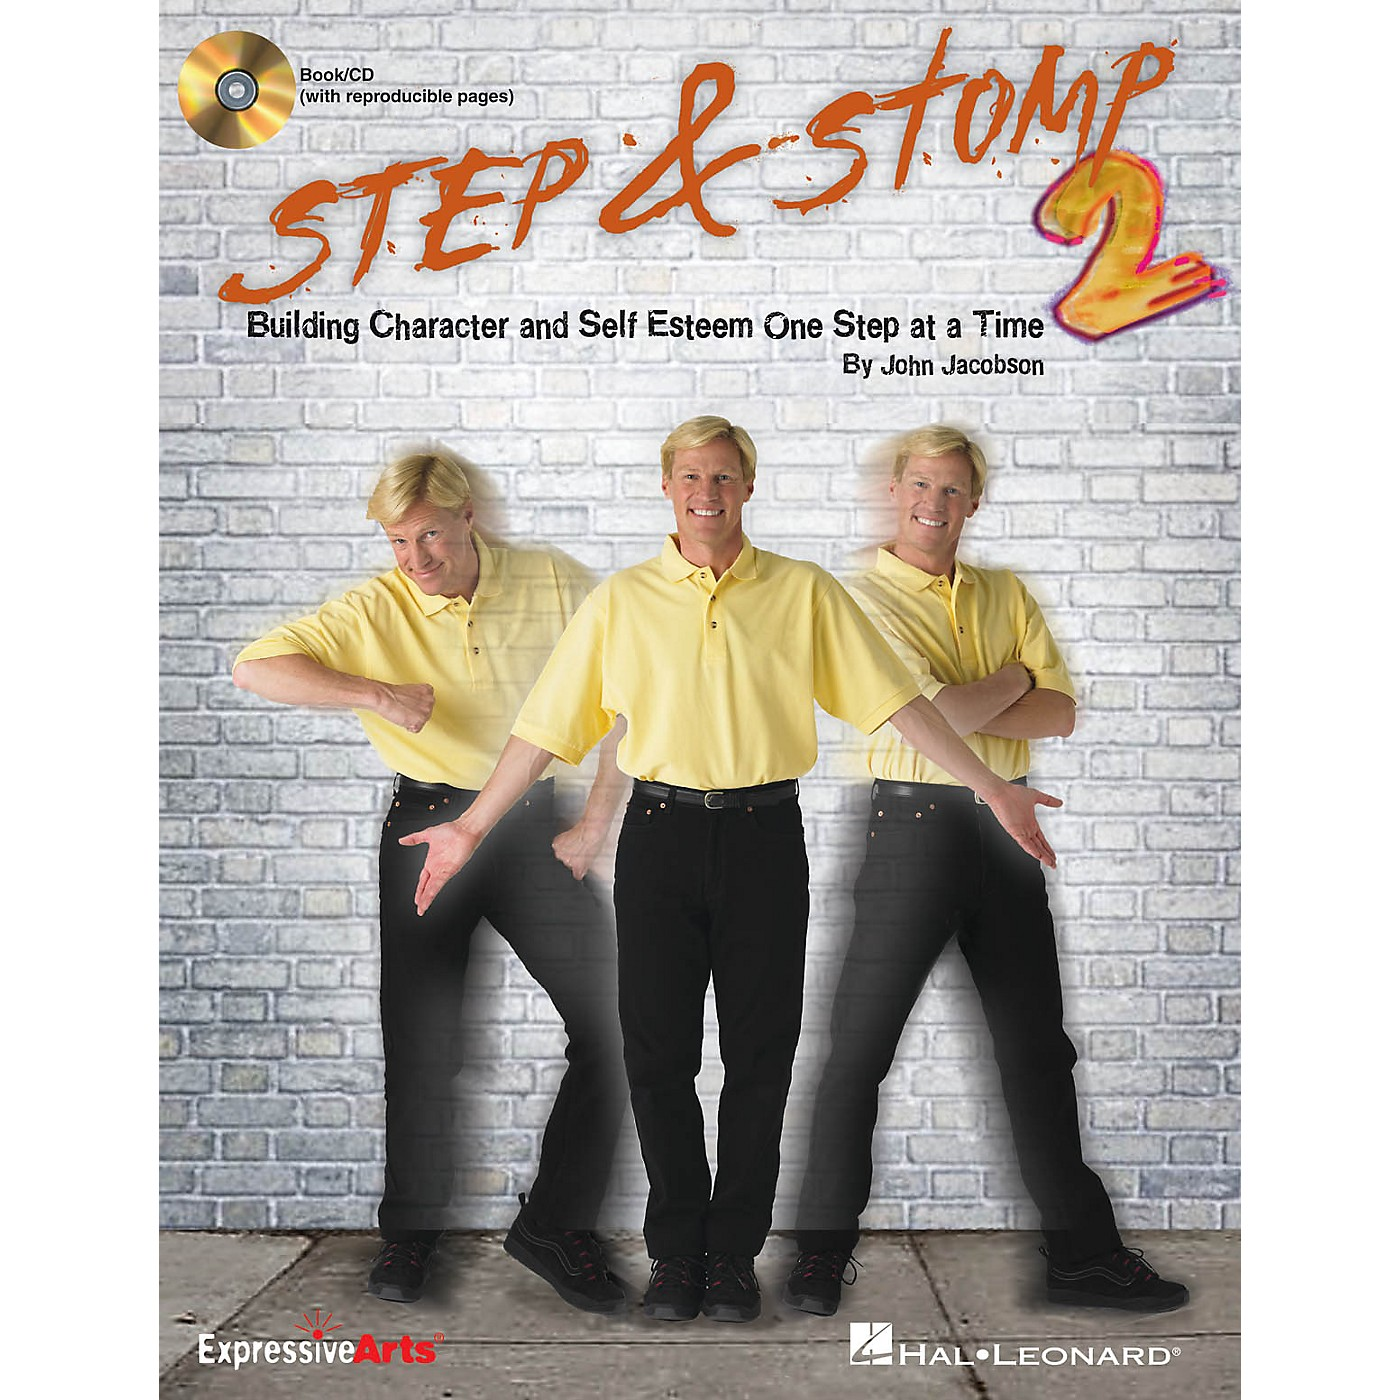 Hal Leonard Step & Stomp 2 (Building Character and Self Esteem One Step at a Time) Book and CD pak by John Jacobson thumbnail